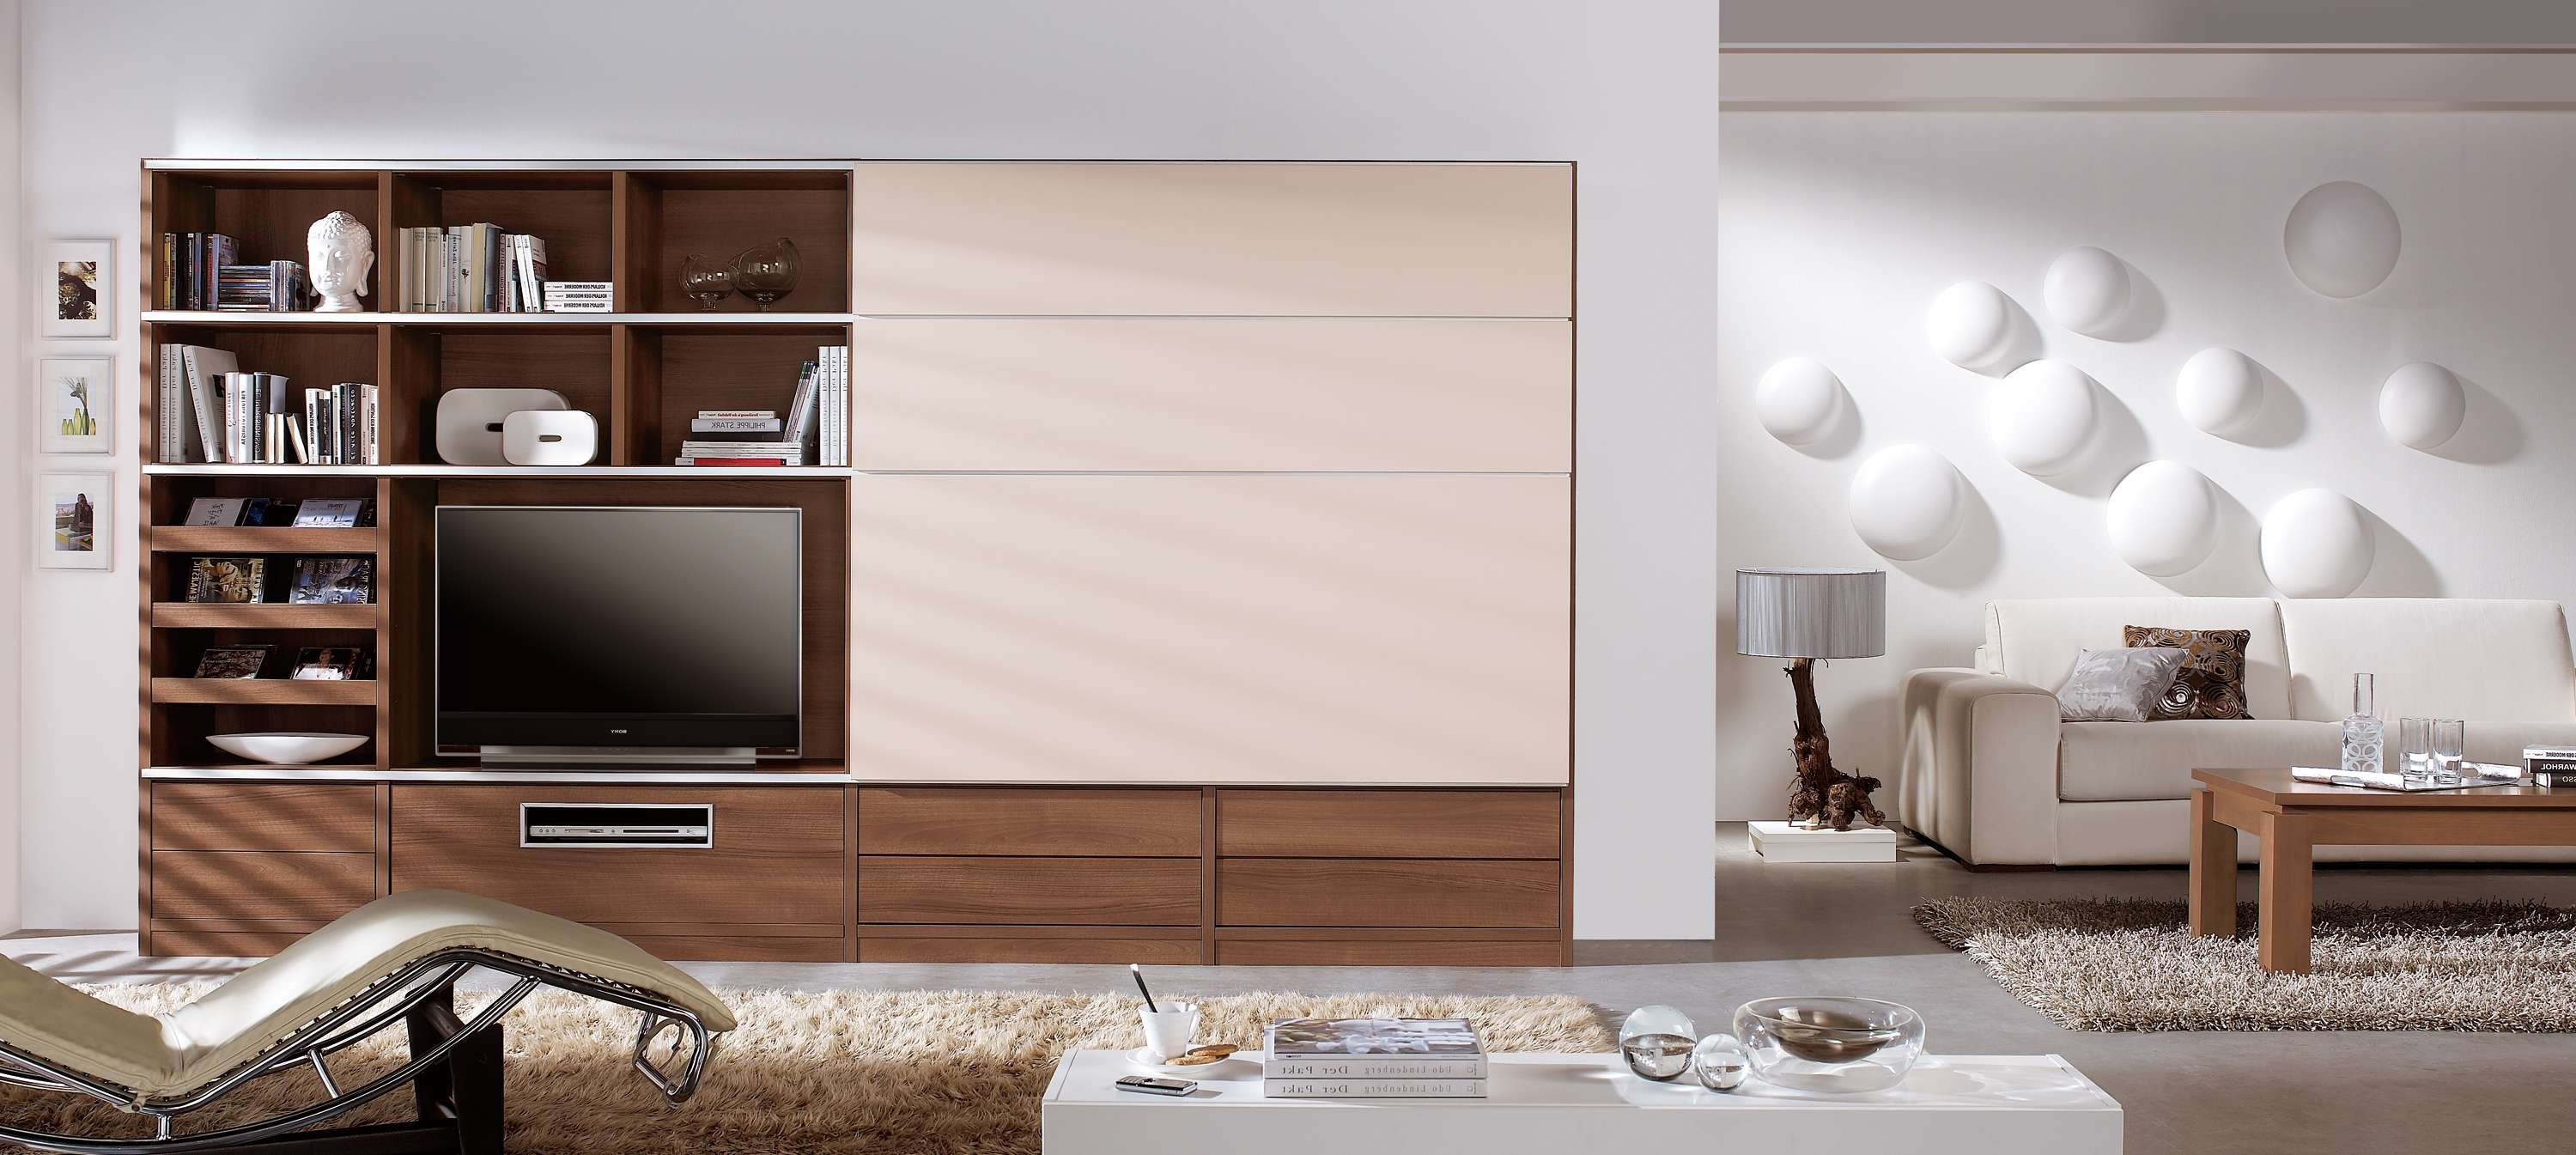 Horrible Light Wood Wall Lcd Tv Wall Cabinet Design Raya Furniture With Regard To Wall Mounted Tv Cabinets With Sliding Doors (View 8 of 20)